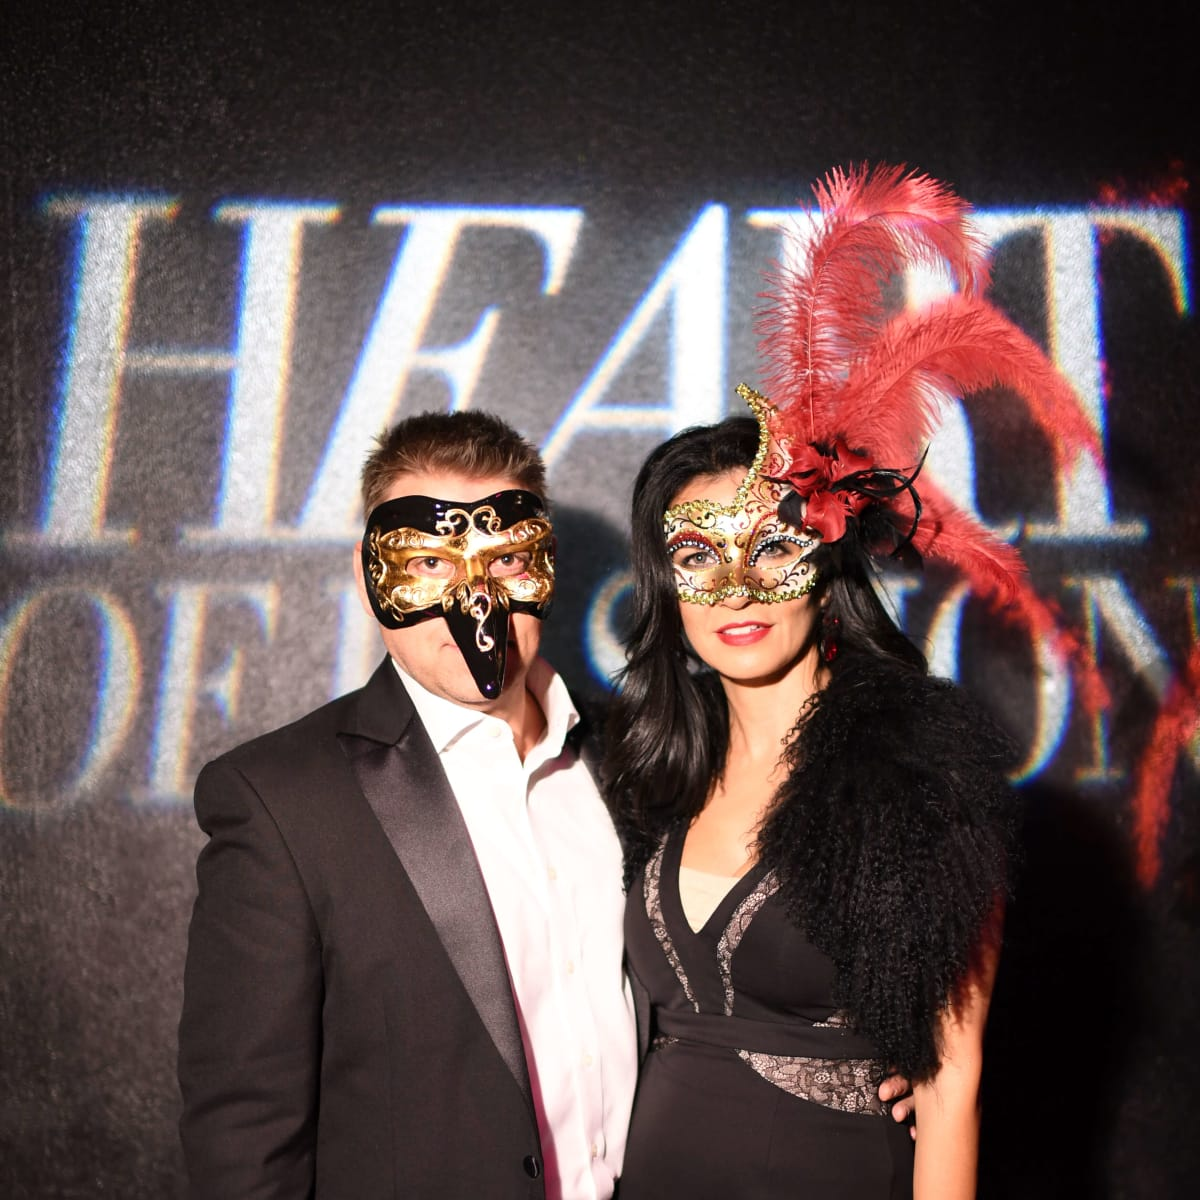 Hank Fasthoff, Maya Fasthoff at Heart of Fashion Masquerade Ball